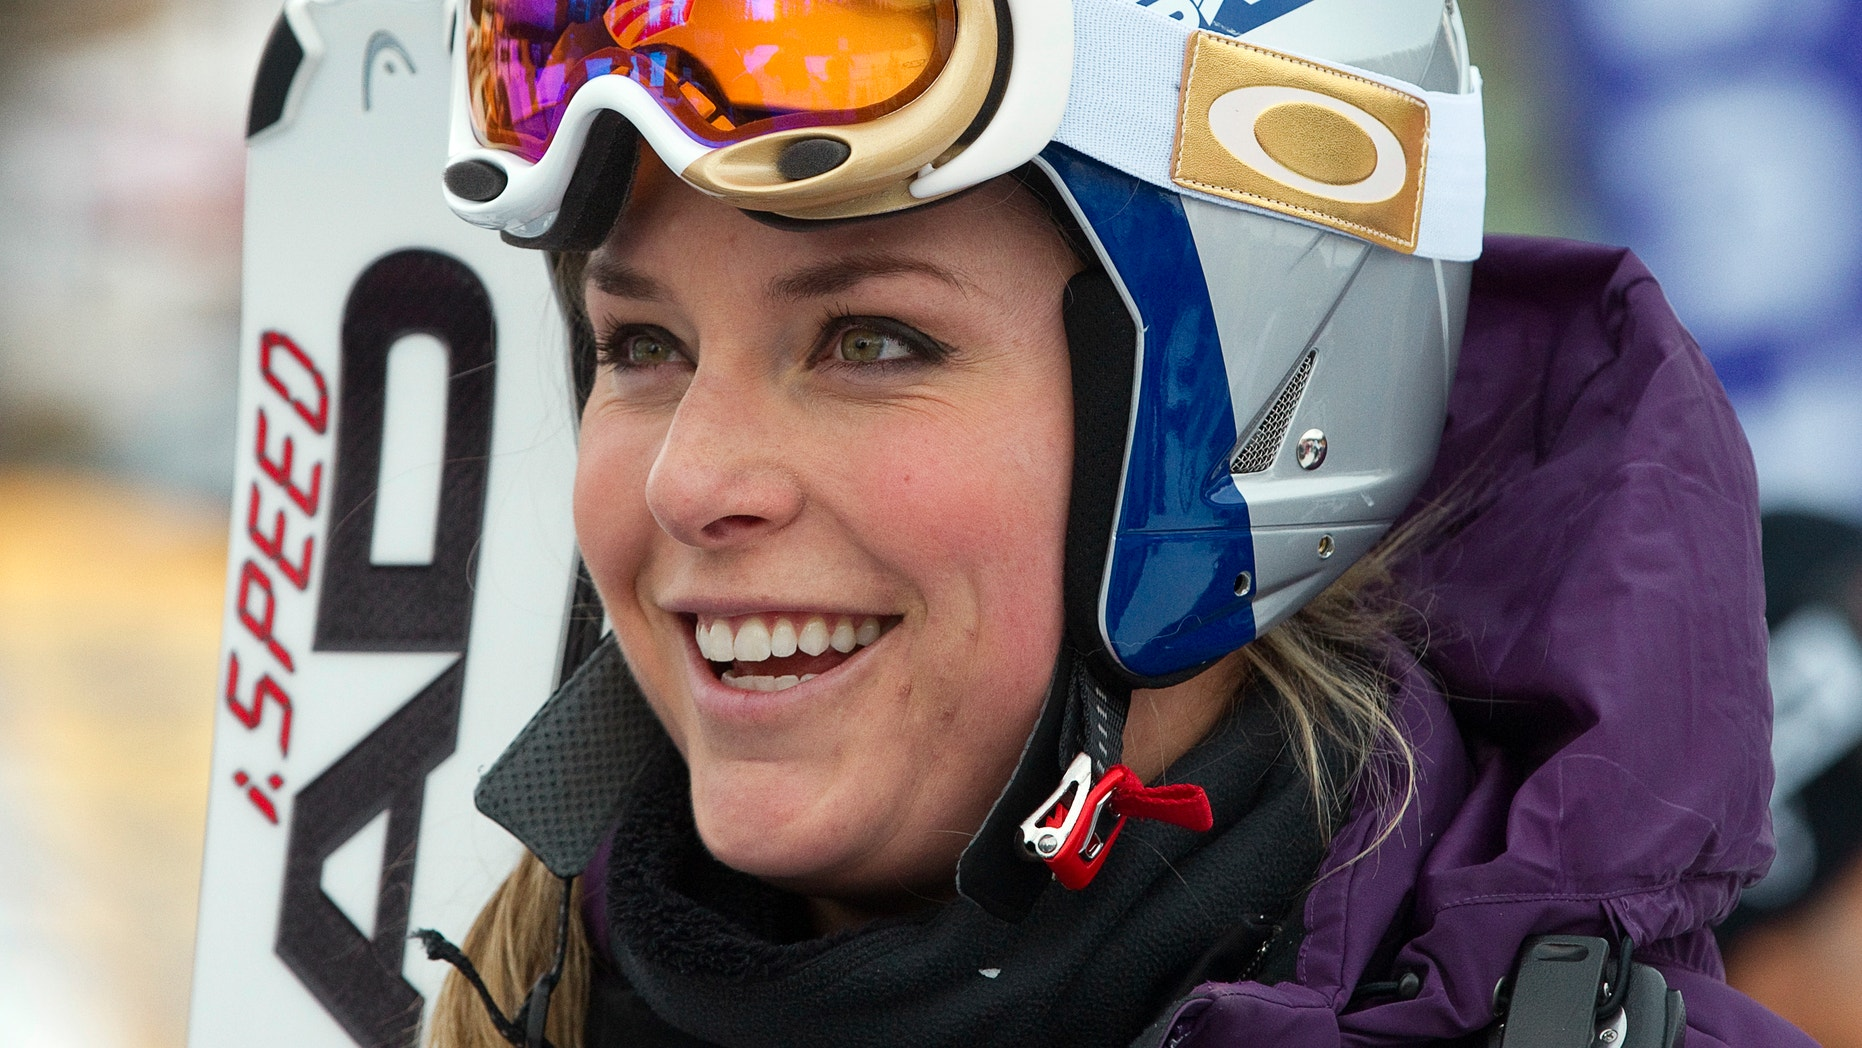 Nov. 29, 2011: Lindsay Vonn of the U.S. reacts following her run during training for the Women's World Cup alpine skiing race in Lake Louise, Alberta